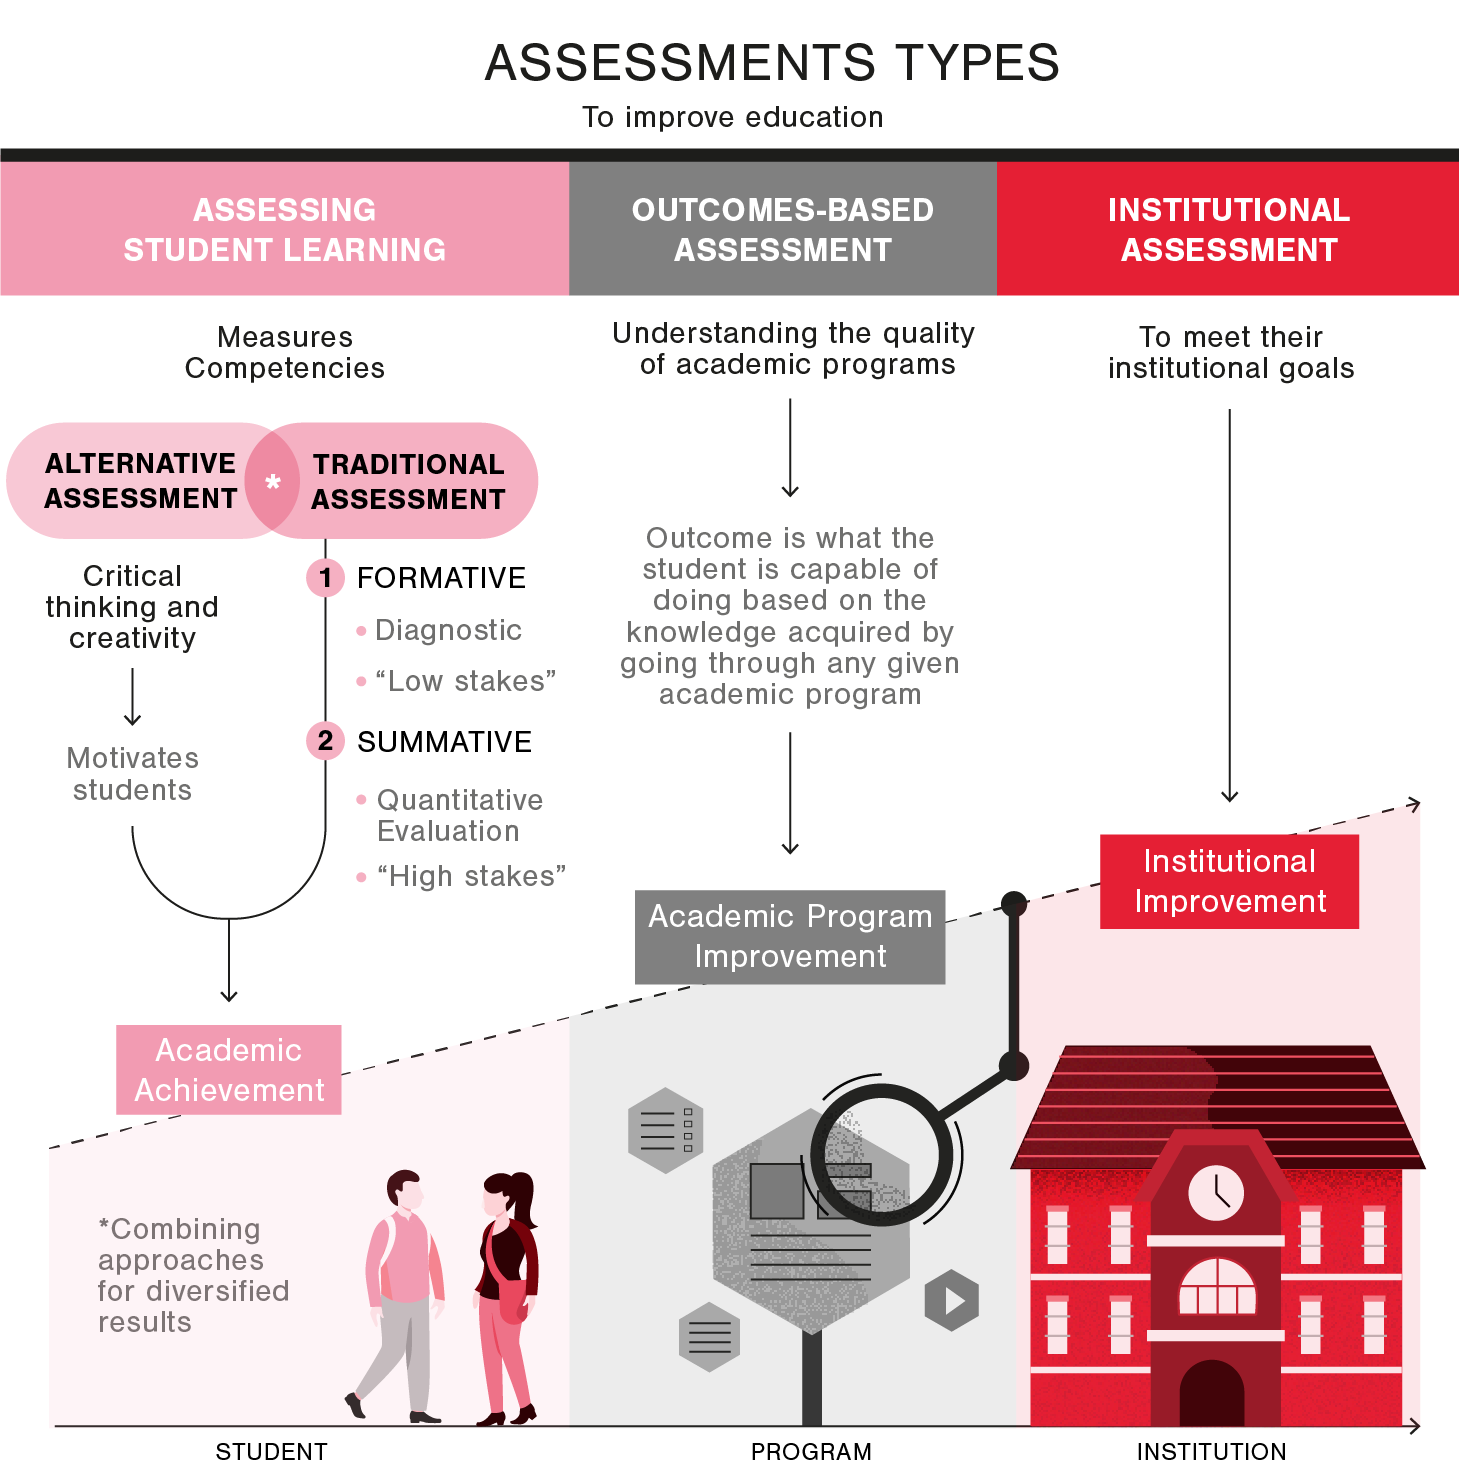 Graphic assessment types to improve education